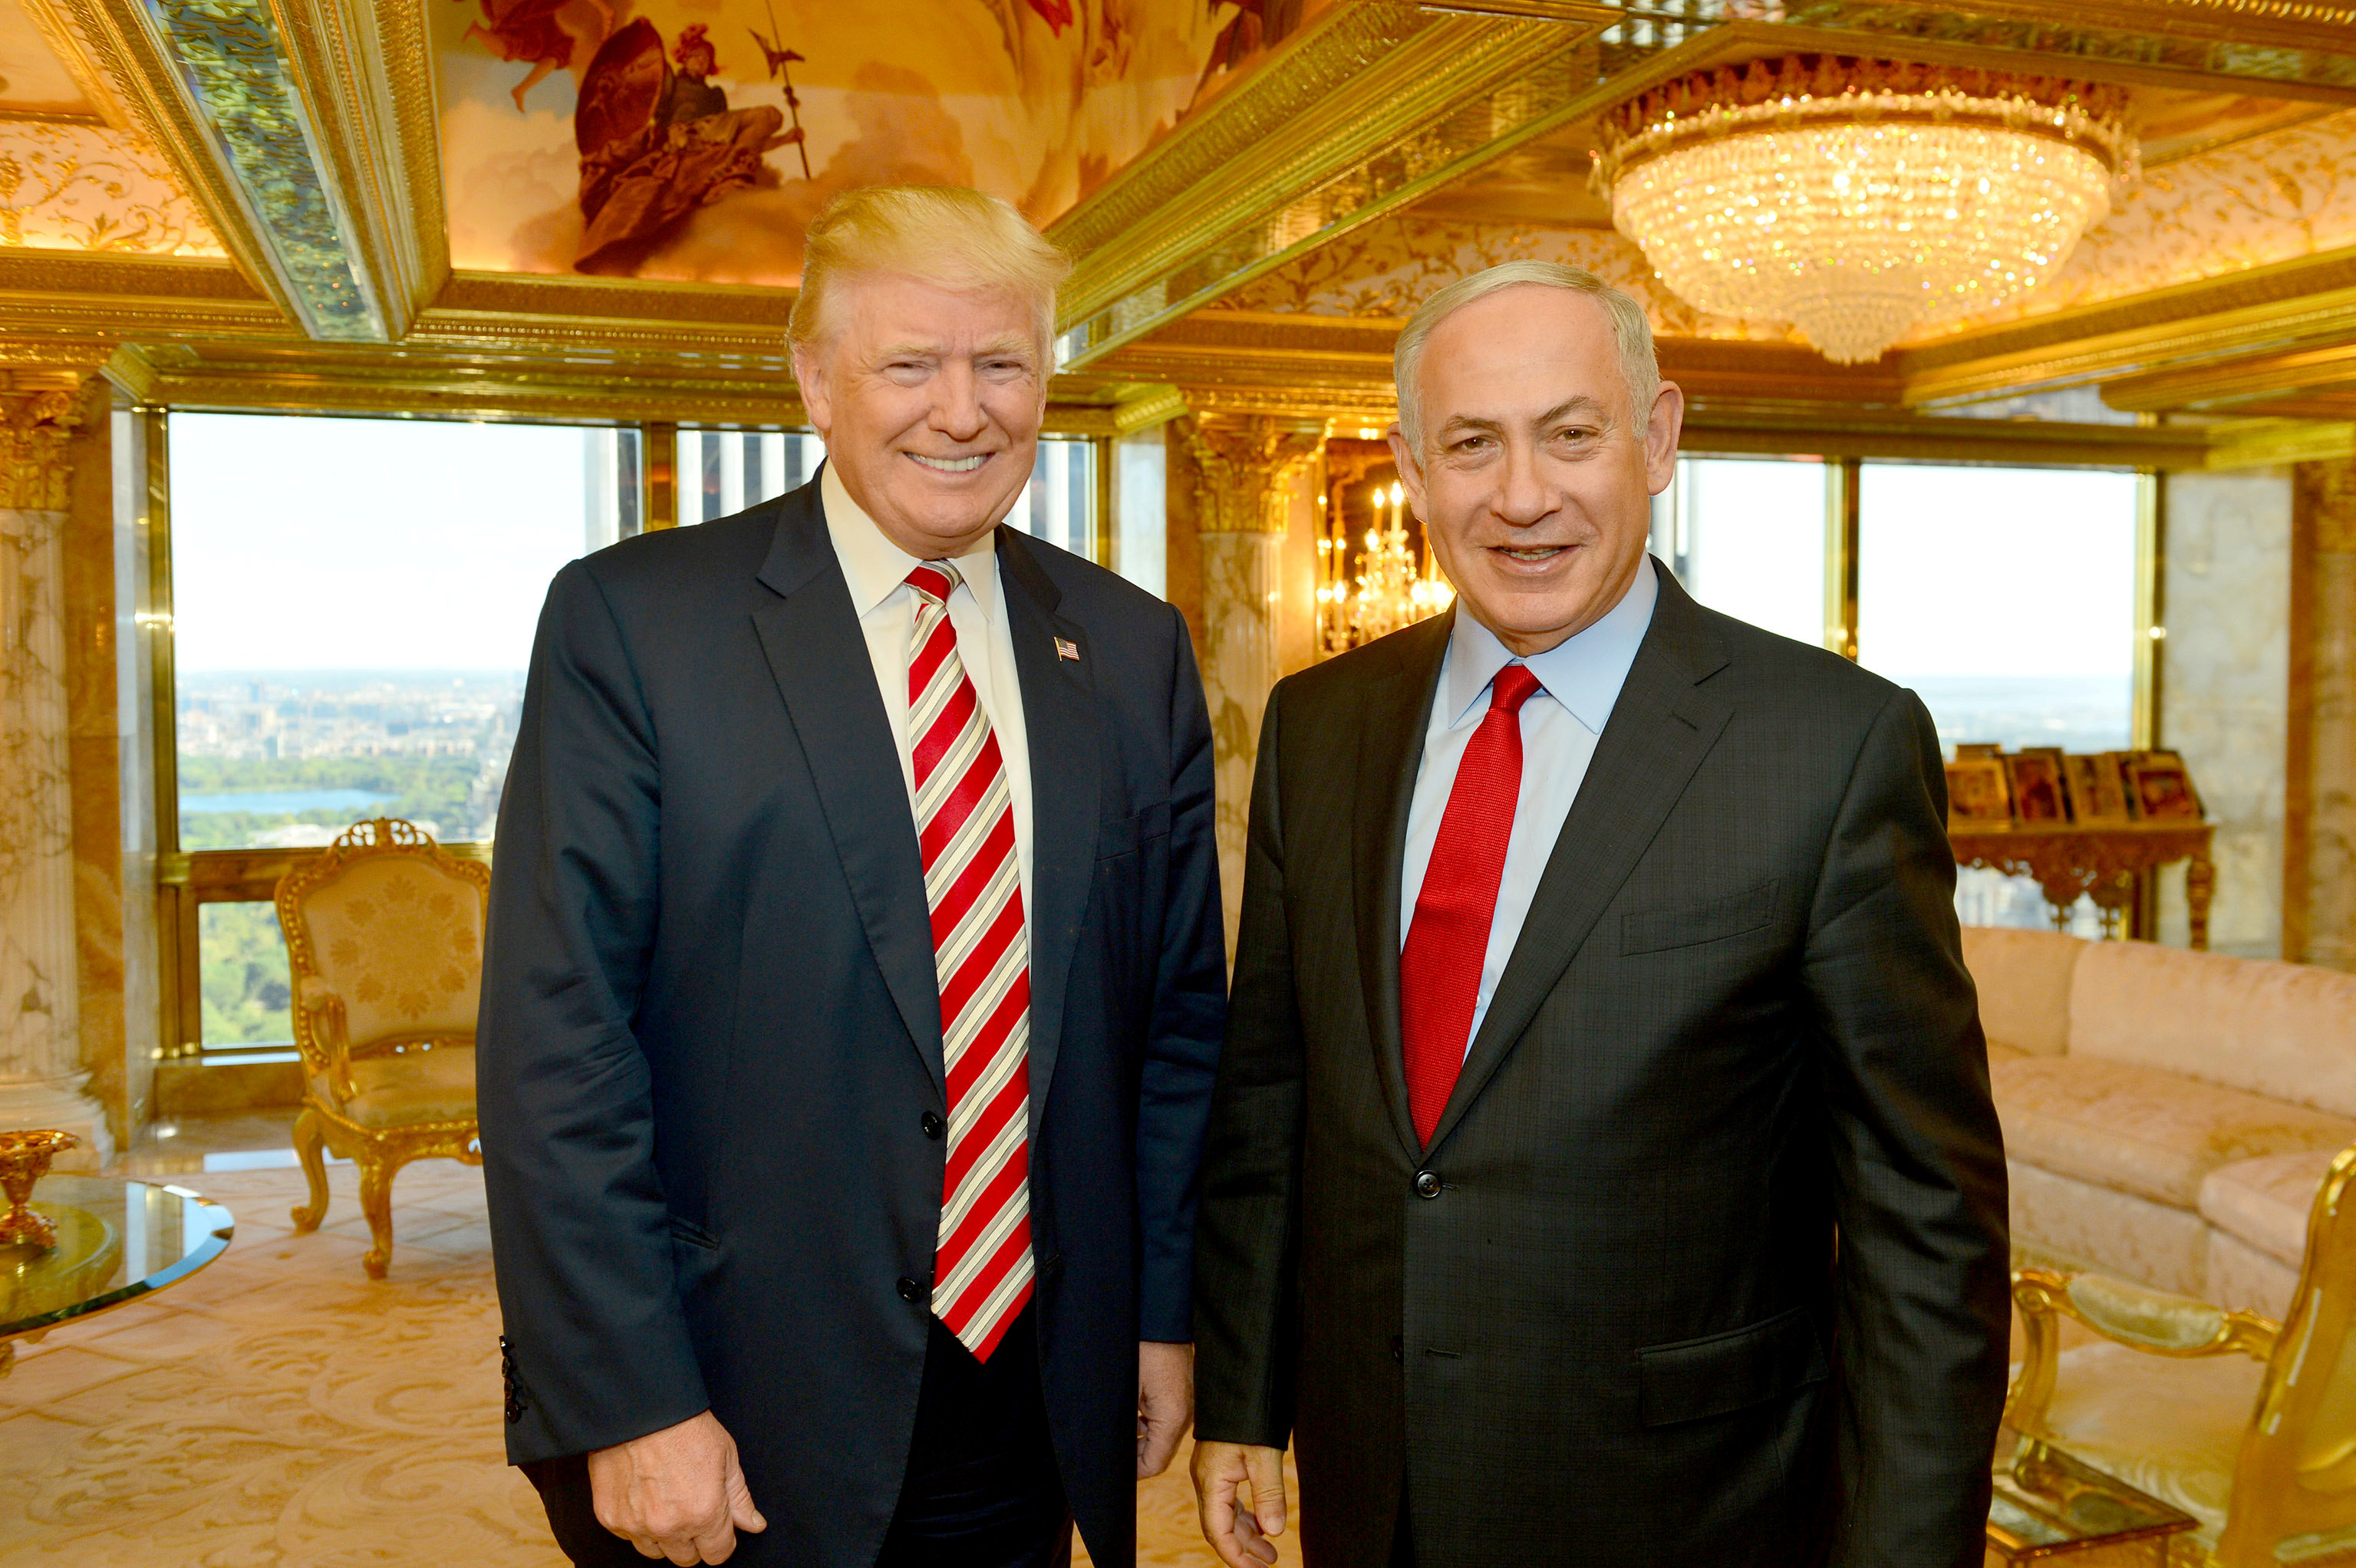 Israeli Prime Minister Benjamin Netanyahu (R) stands next to Republican U.S. presidential candidate Donald Trump during their meeting in New York, U.S.